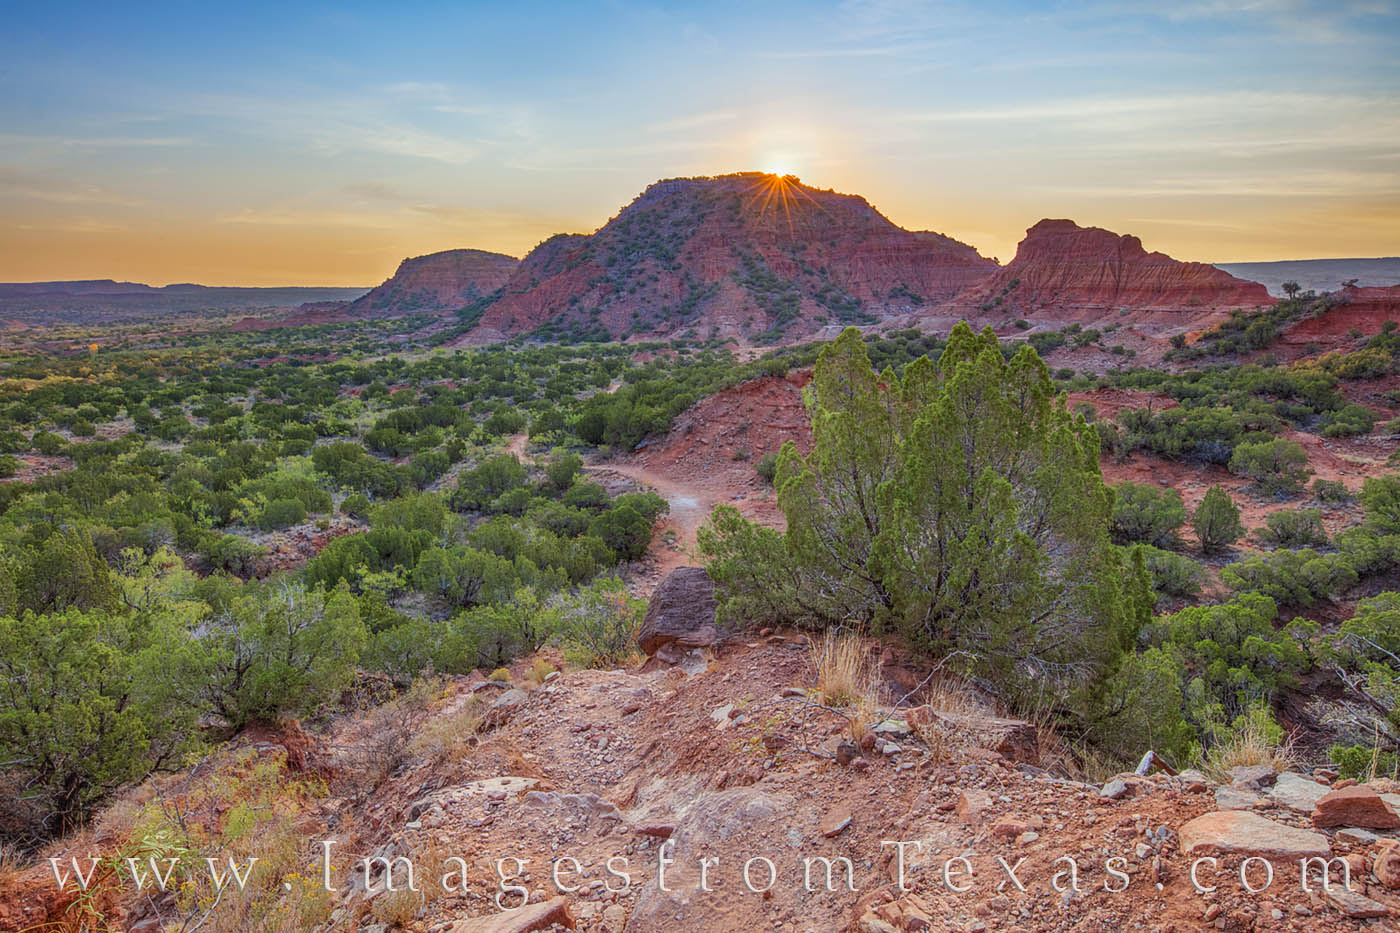 caprock canyons state park, hiking, trail, sunrise, caprock canyons prints, morning, texas state parks, west texas, photo